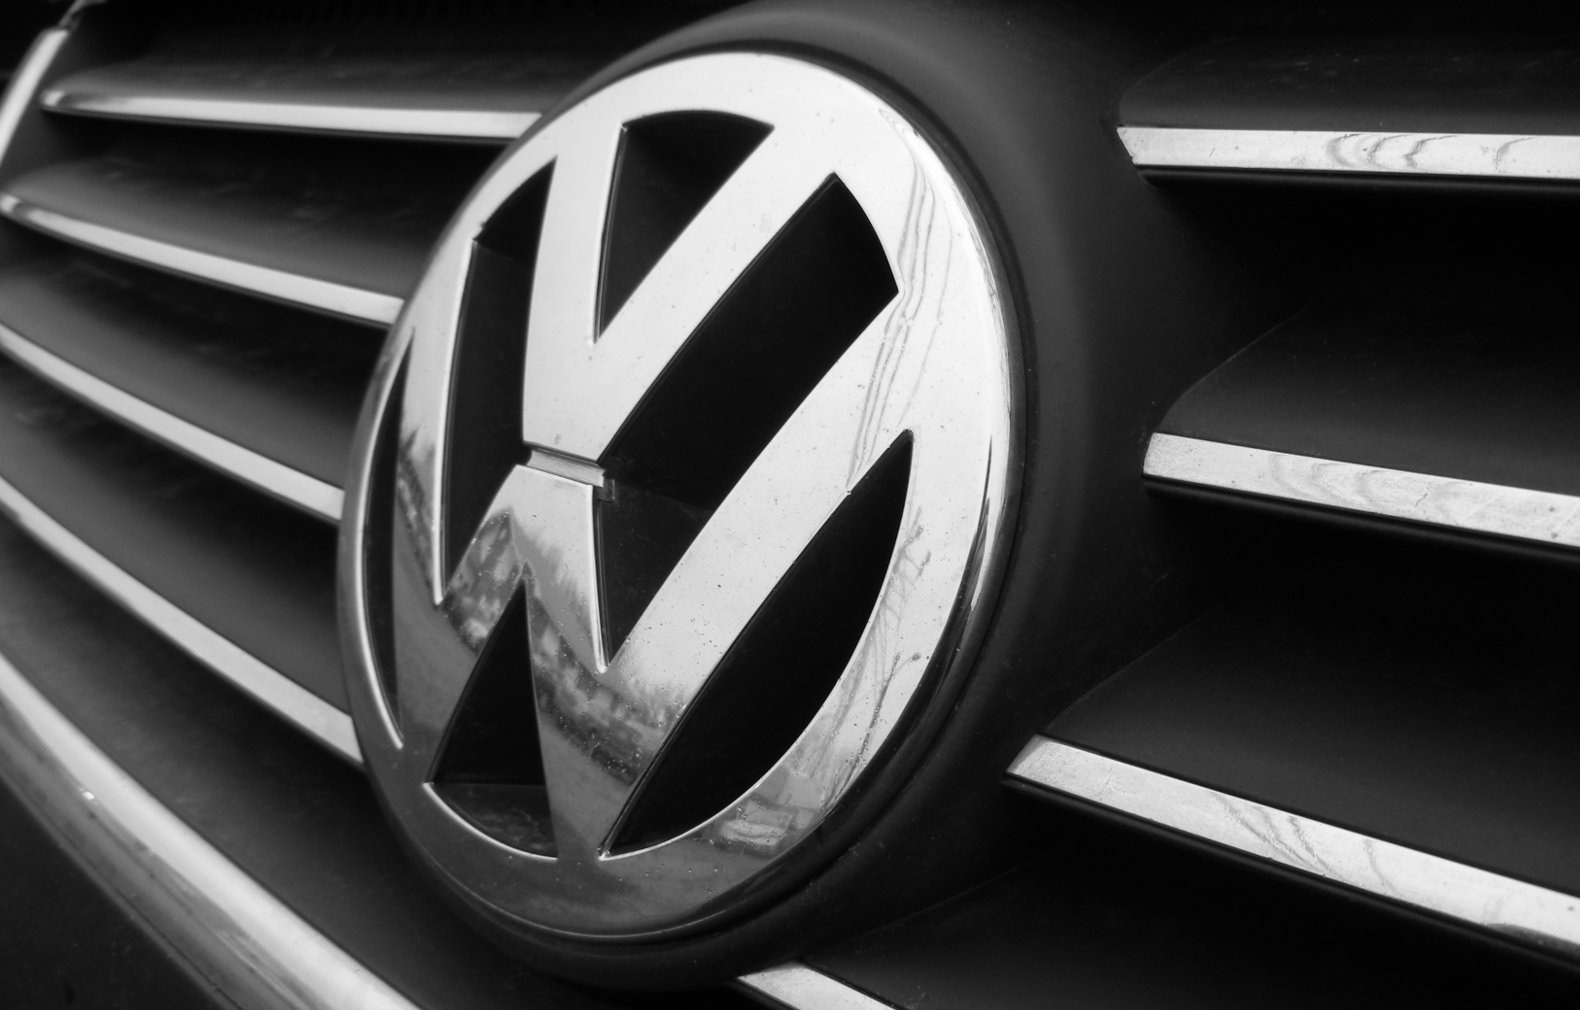 VW promises world's first mass market electric car